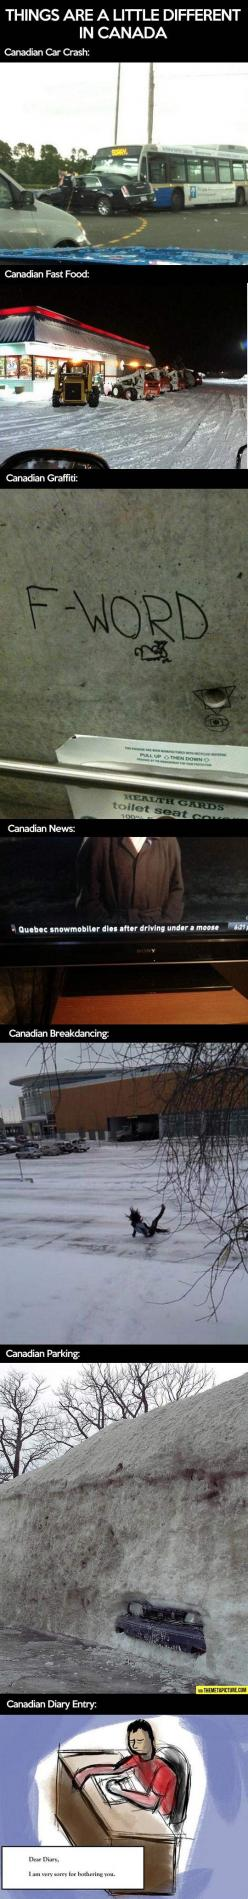 Things are somehow different in Canada…: Giggle, Canada, Canadian Stereotypes, Canadian Friends, Funny Stuff, Things, It S Funny, Canadian Thing